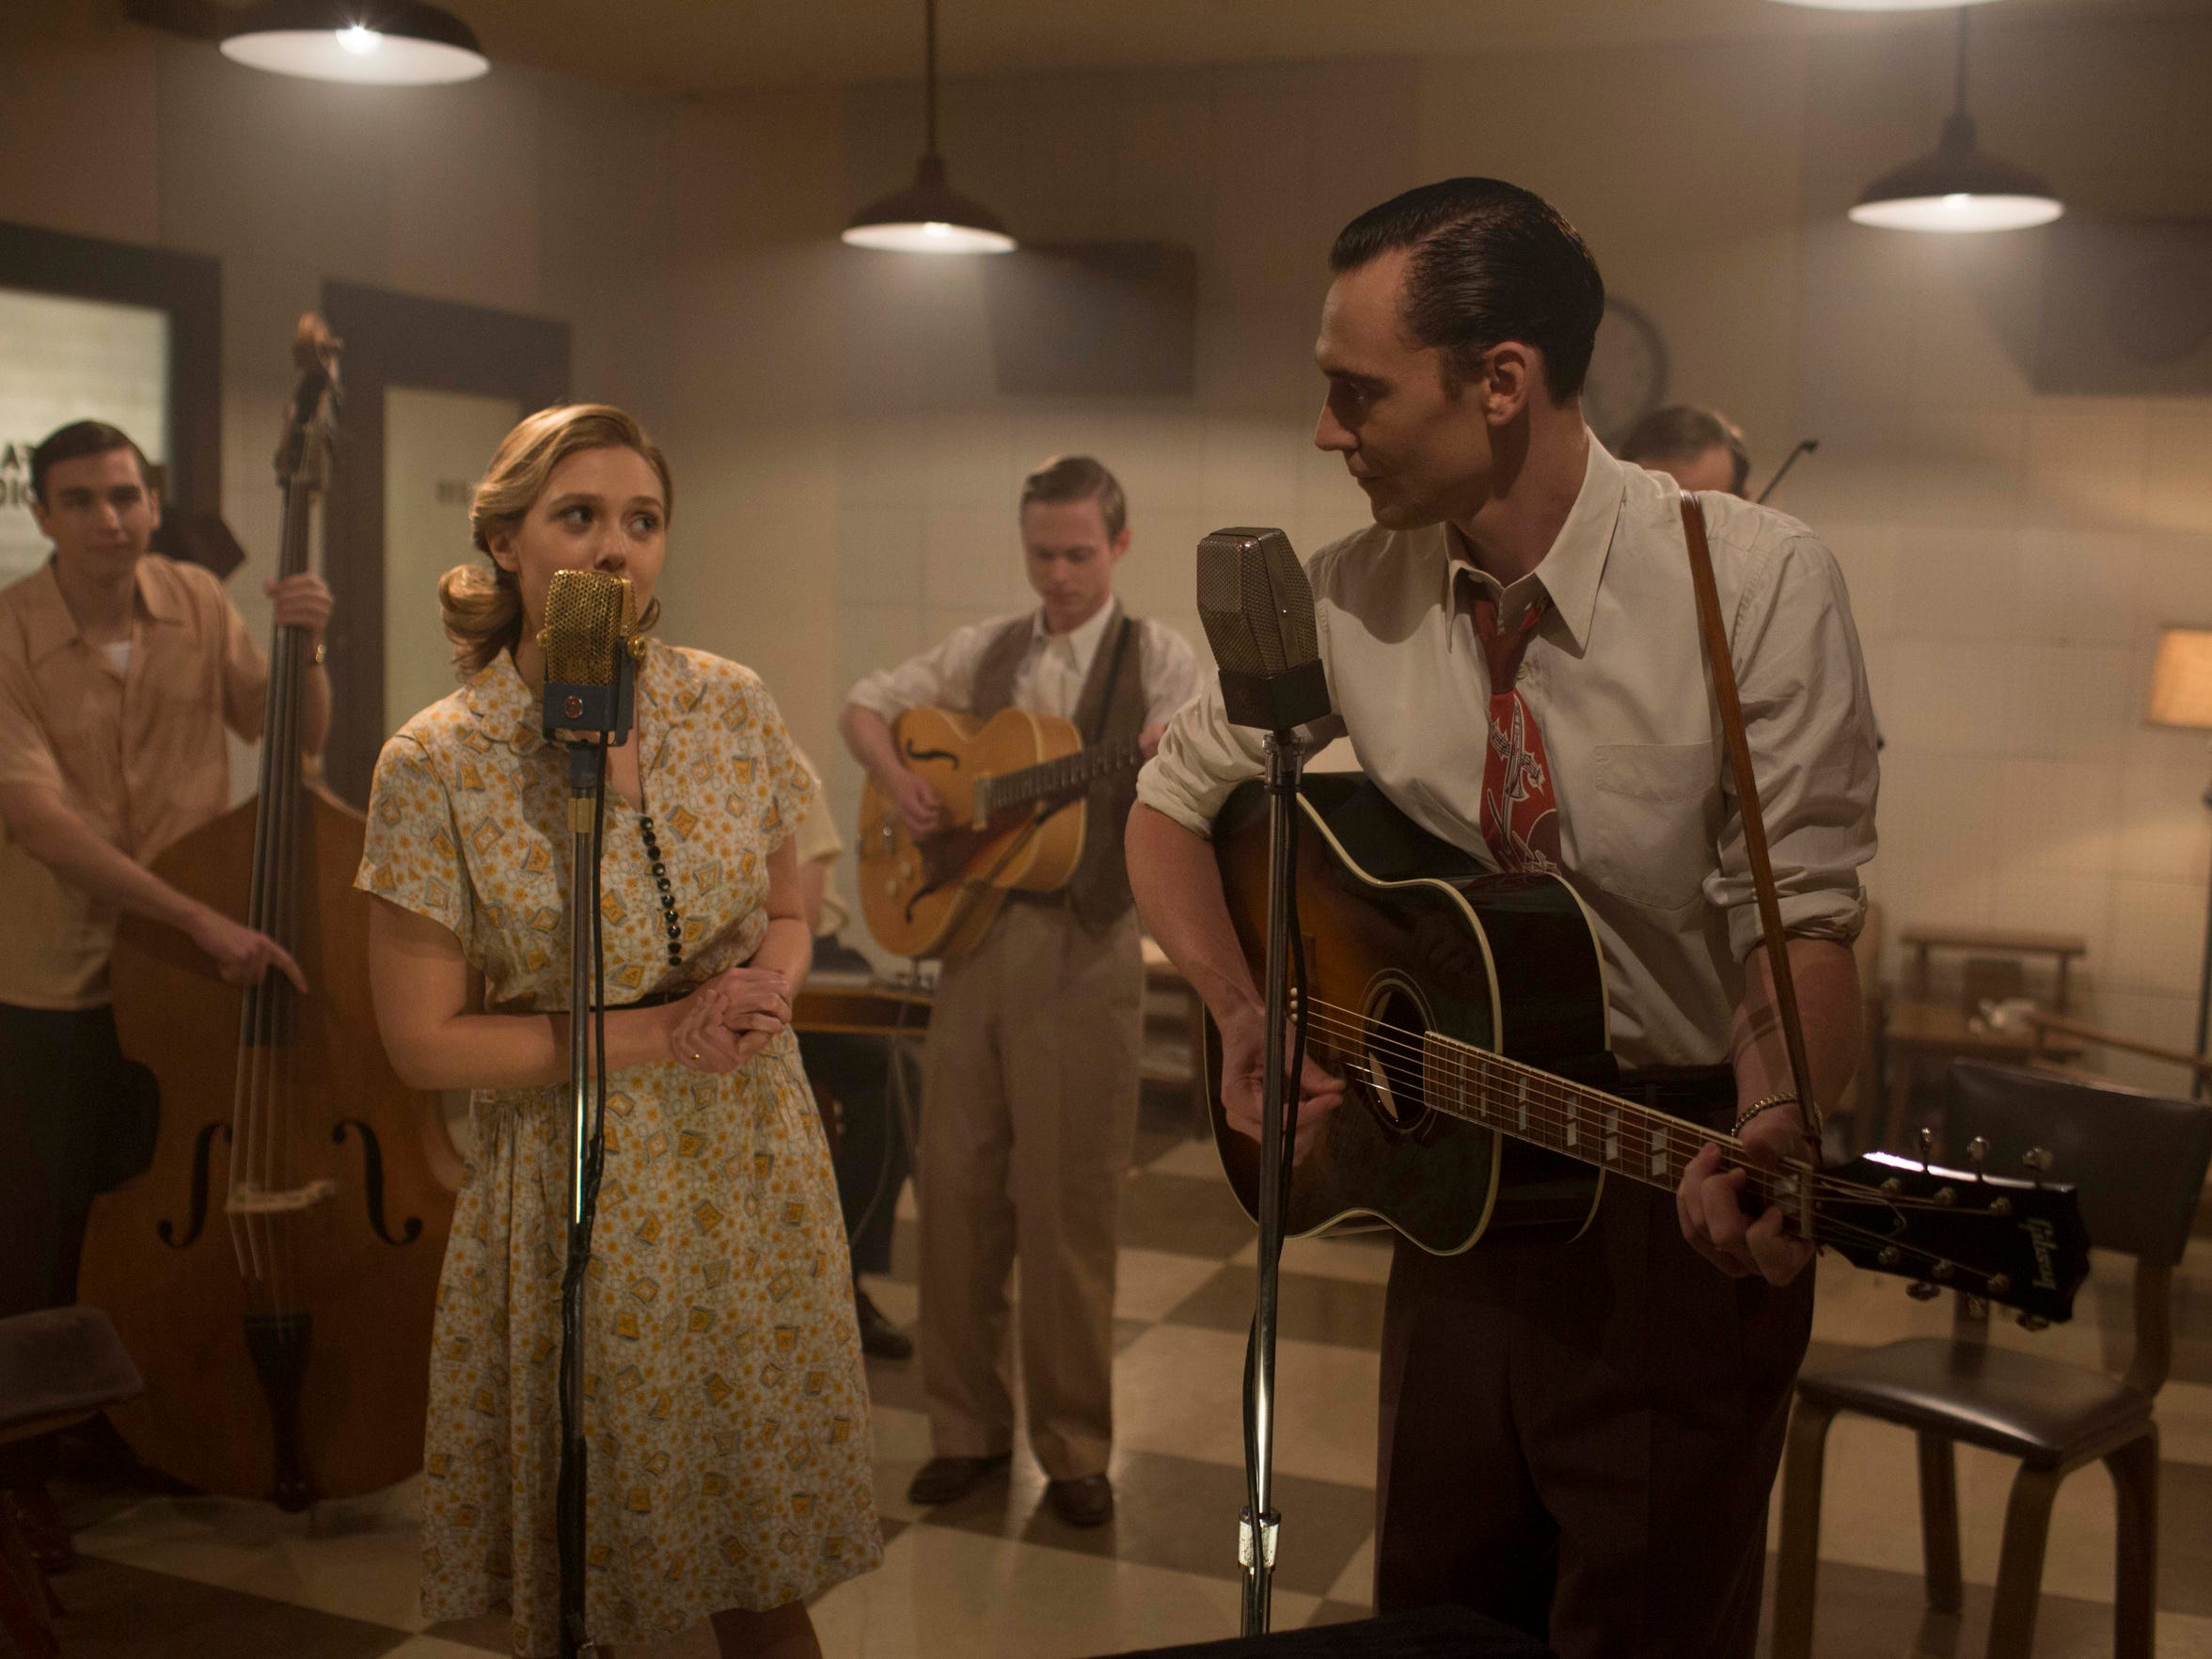 "Left to right: Elizabeth Olsen as Audrey Williams and Tom Hiddleston as Hank Williams sing along with the band in ""I Saw the Light."" The recording studio was built inside the  Petroleum Club in downtown Shreveport. At the time, the building was being renovated, so the film crew built the entire room, including the walls to shoot the scene, said location manager Ed Lipscomb."